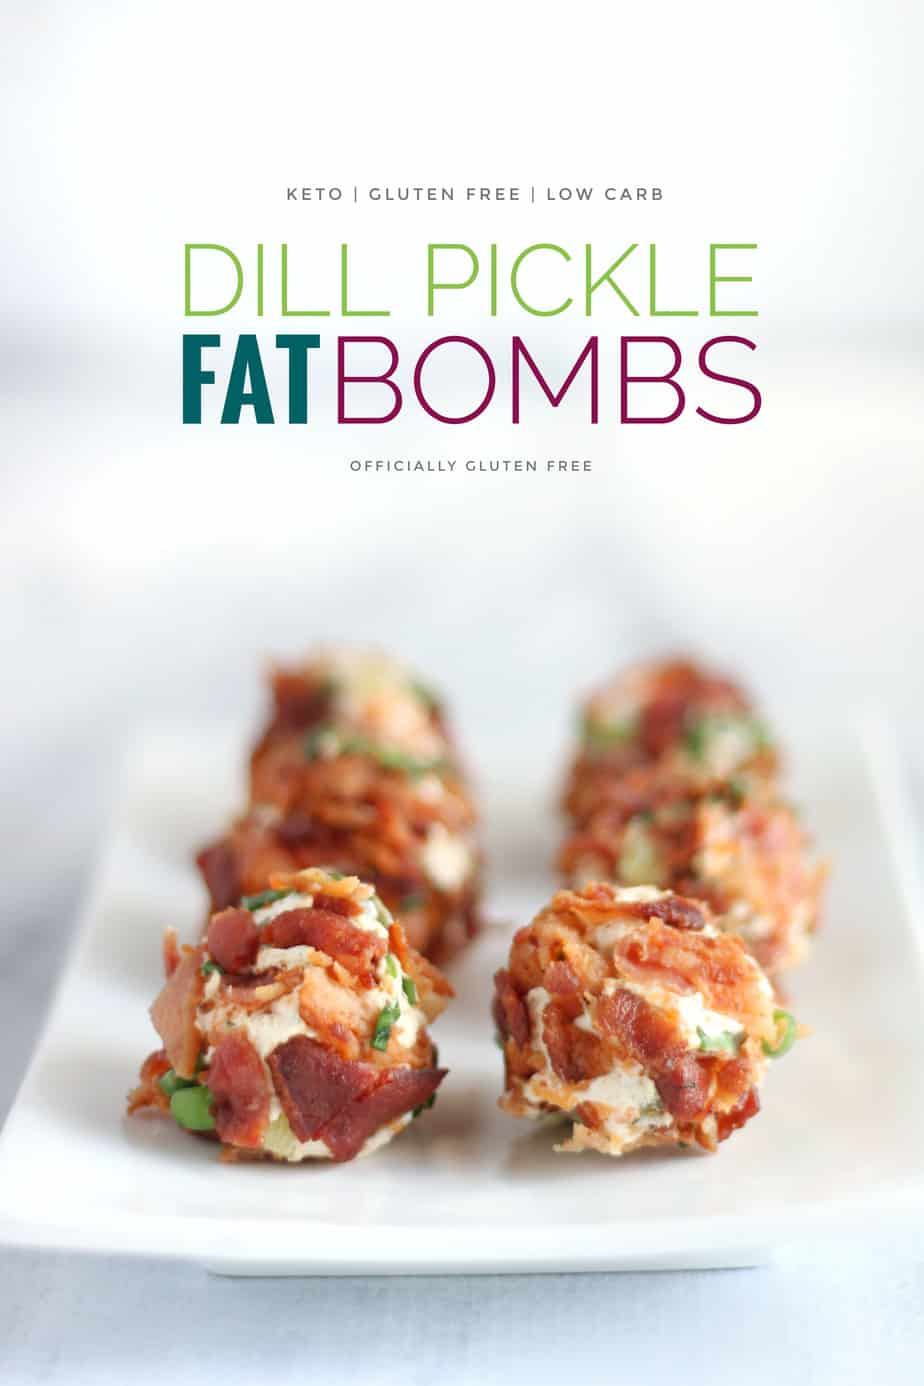 Keto Dill Pickle Fat Bombs